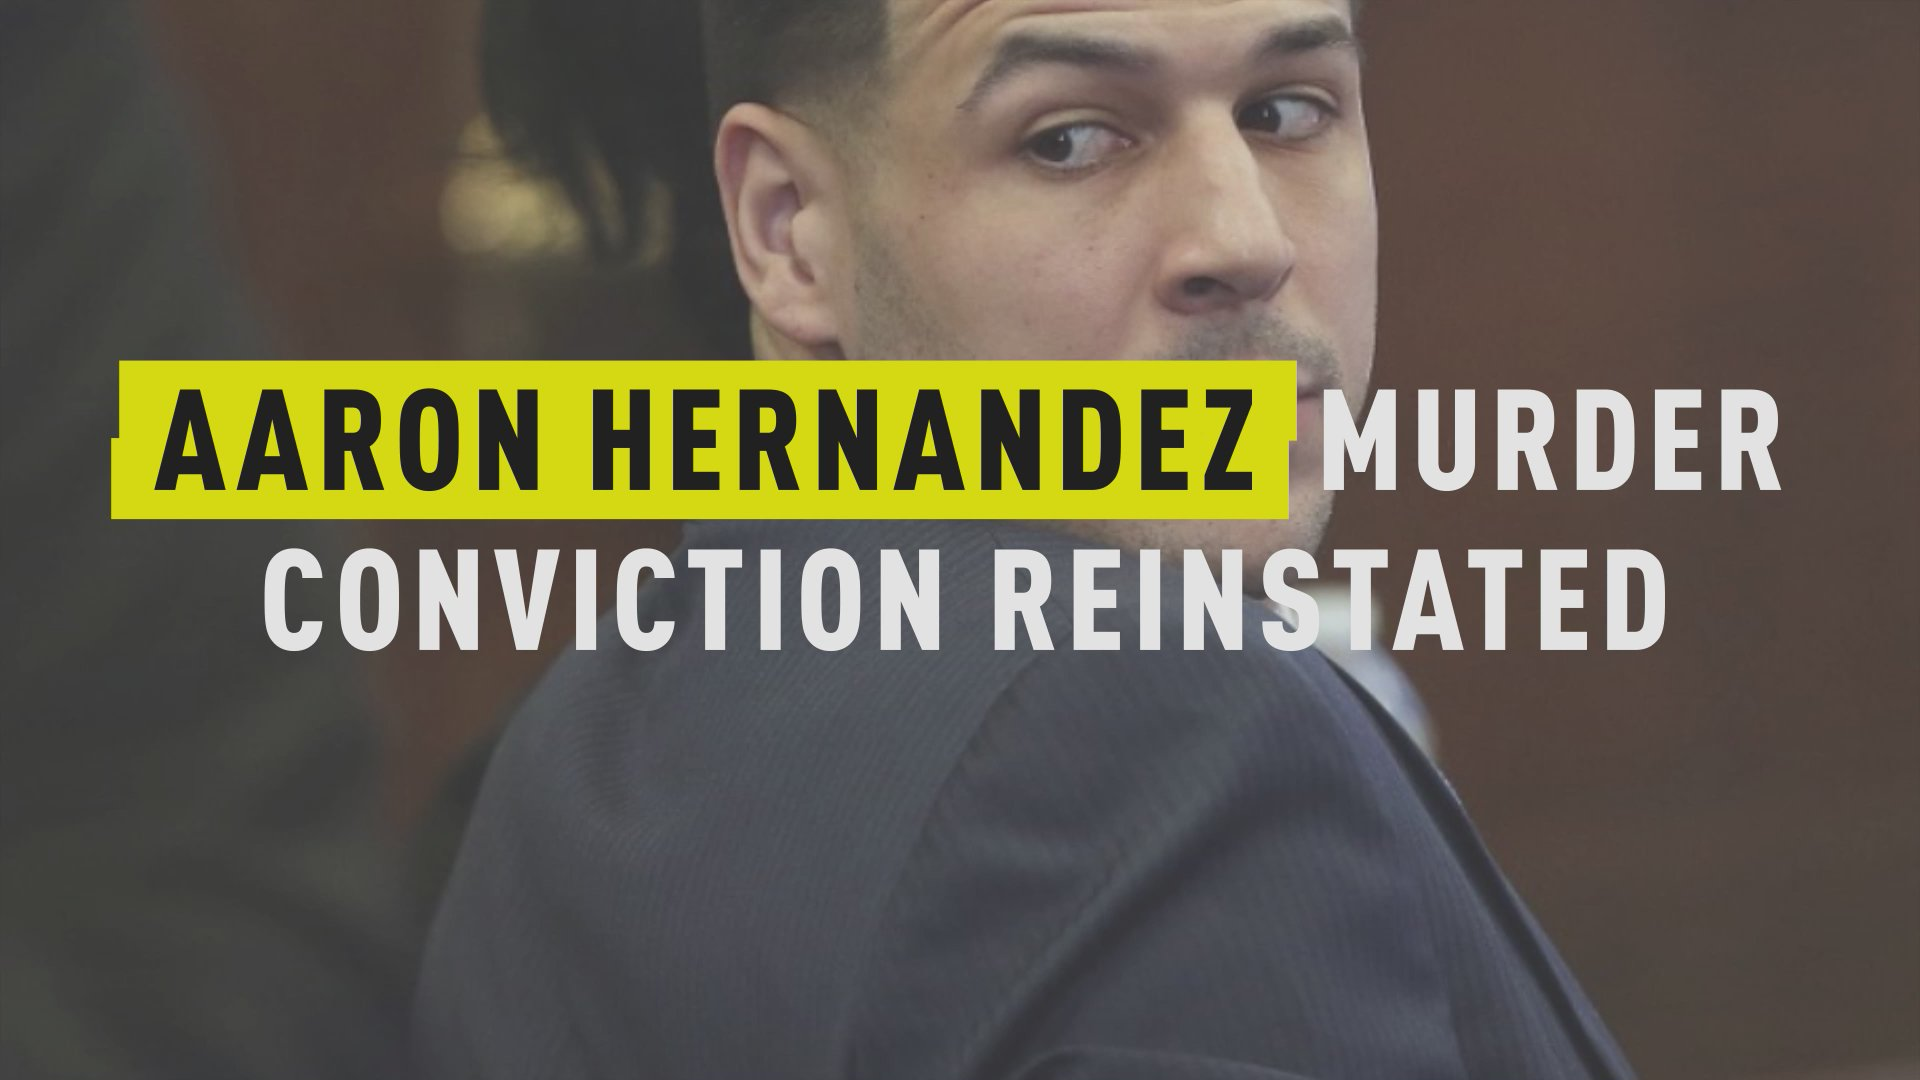 Netflix releases documentary on Aaron Hernandez